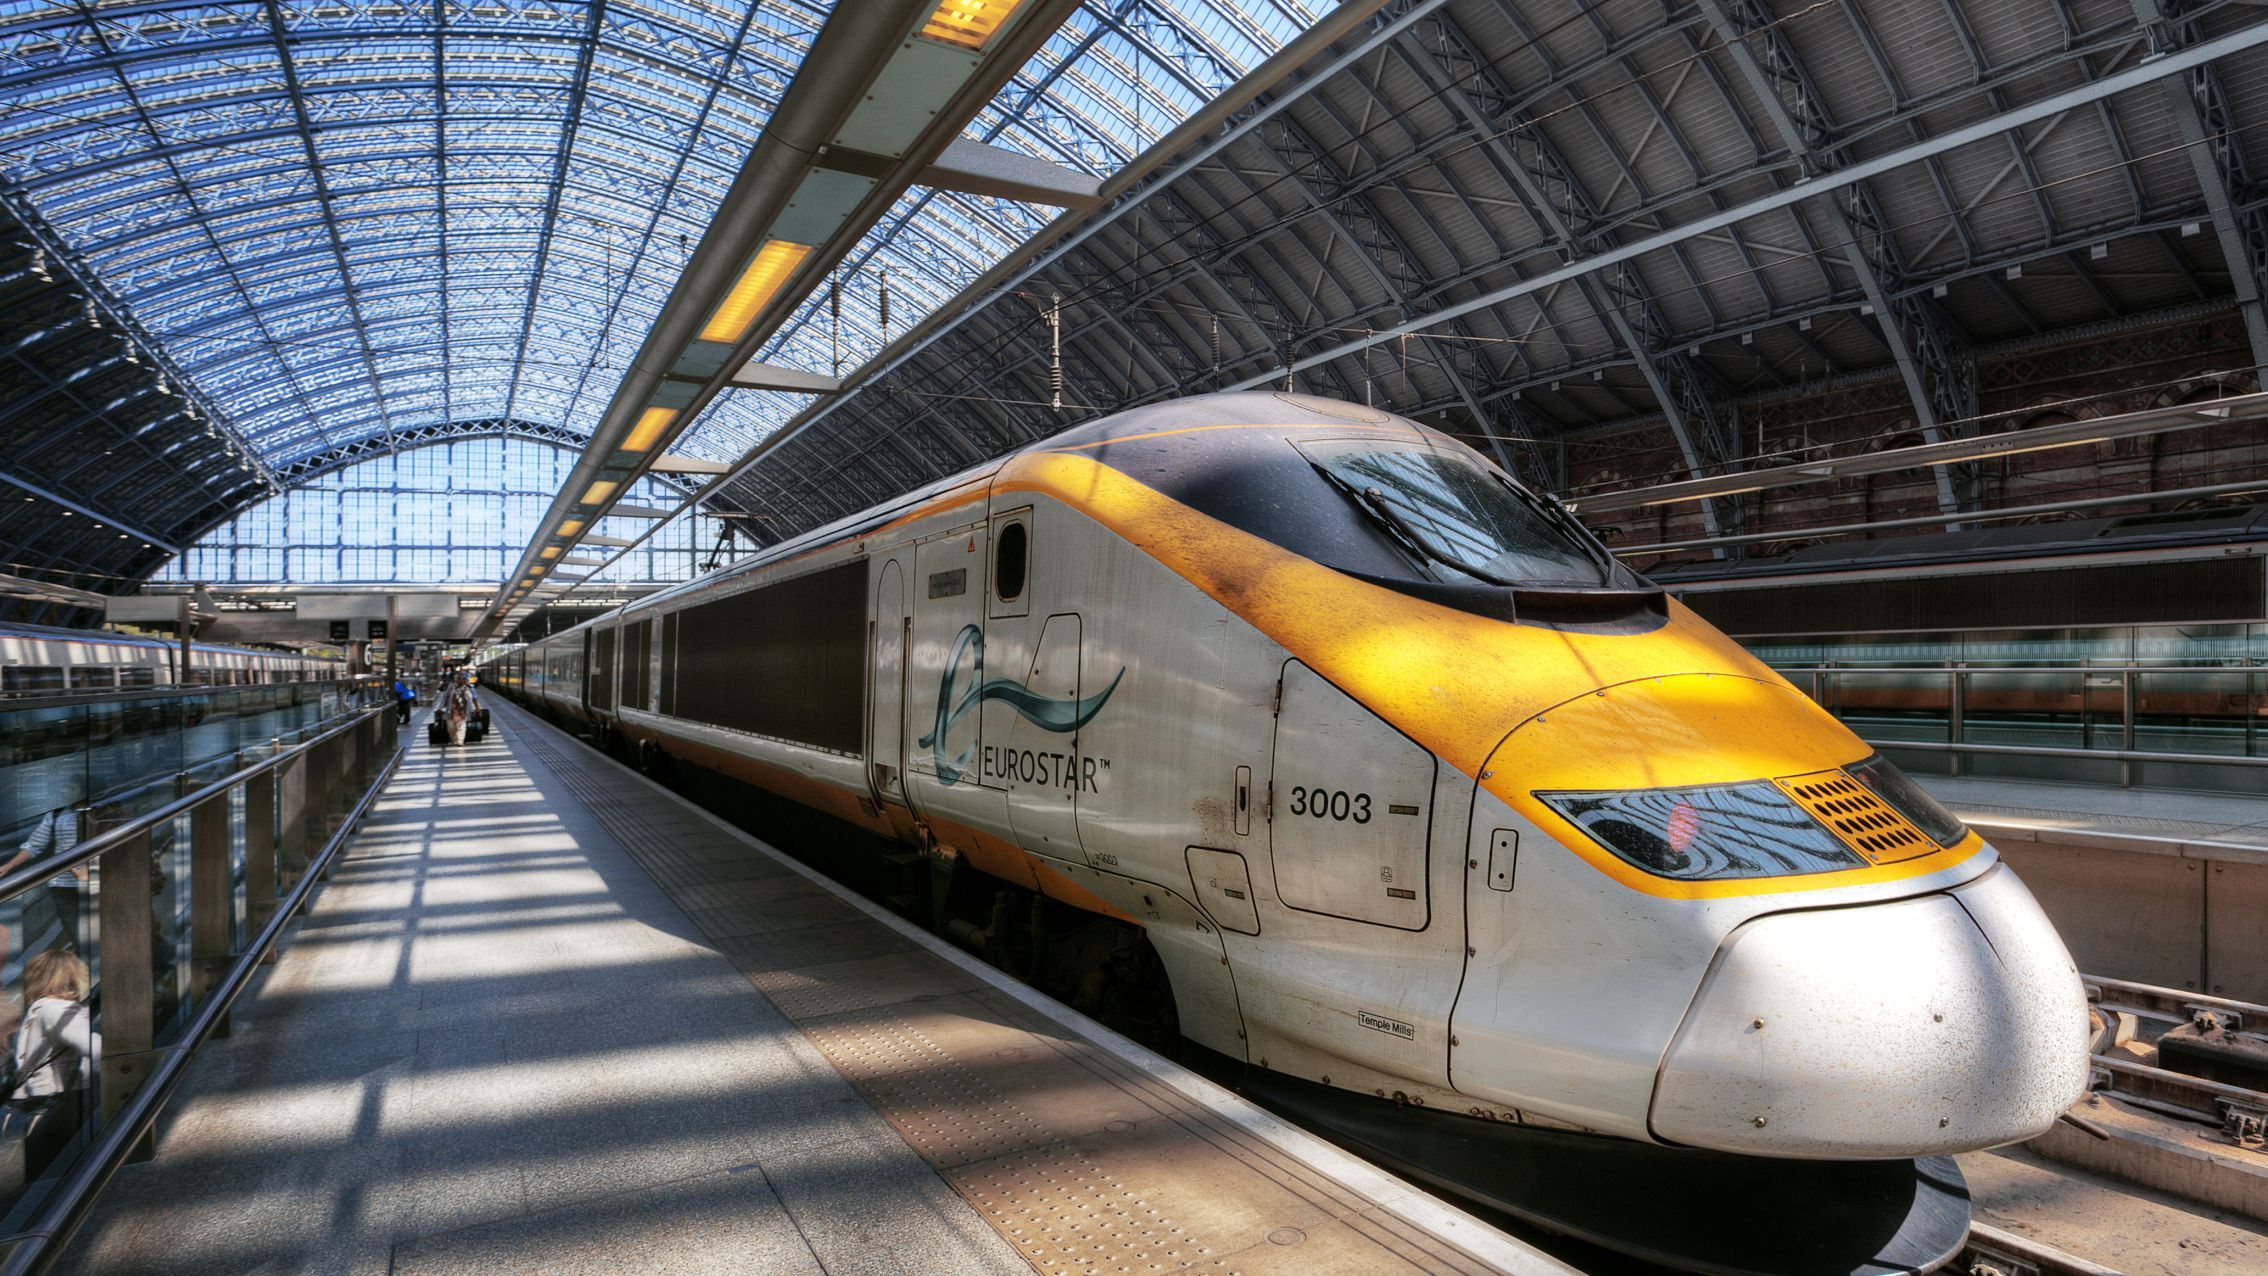 How to Take Eurostar - The Complete Guide